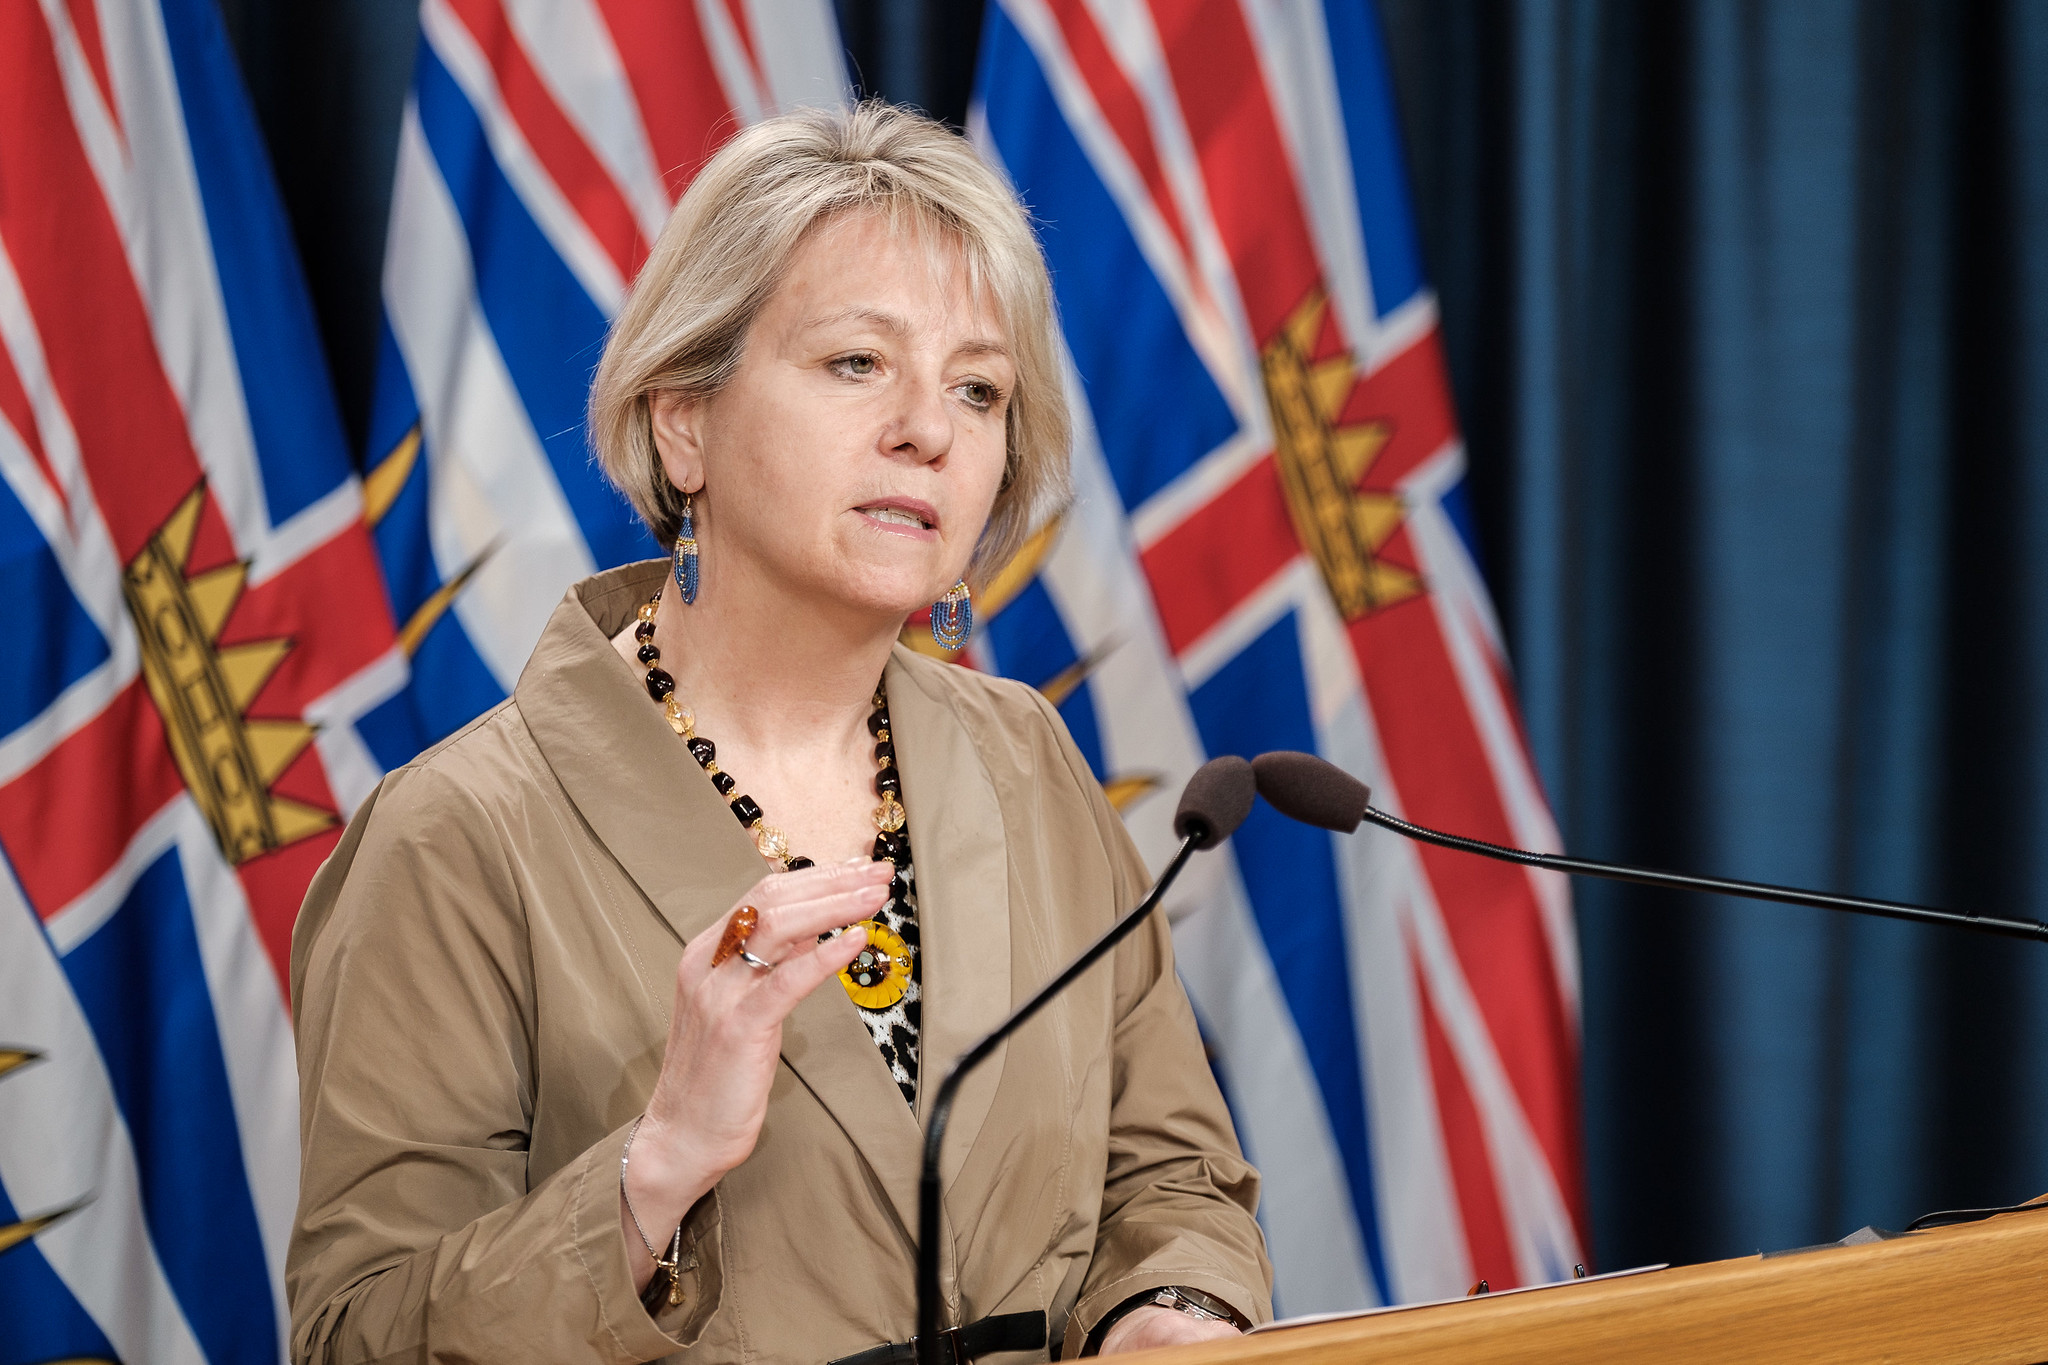 COVID-19: B.C. health officials announce 737 new cases, 11 deaths